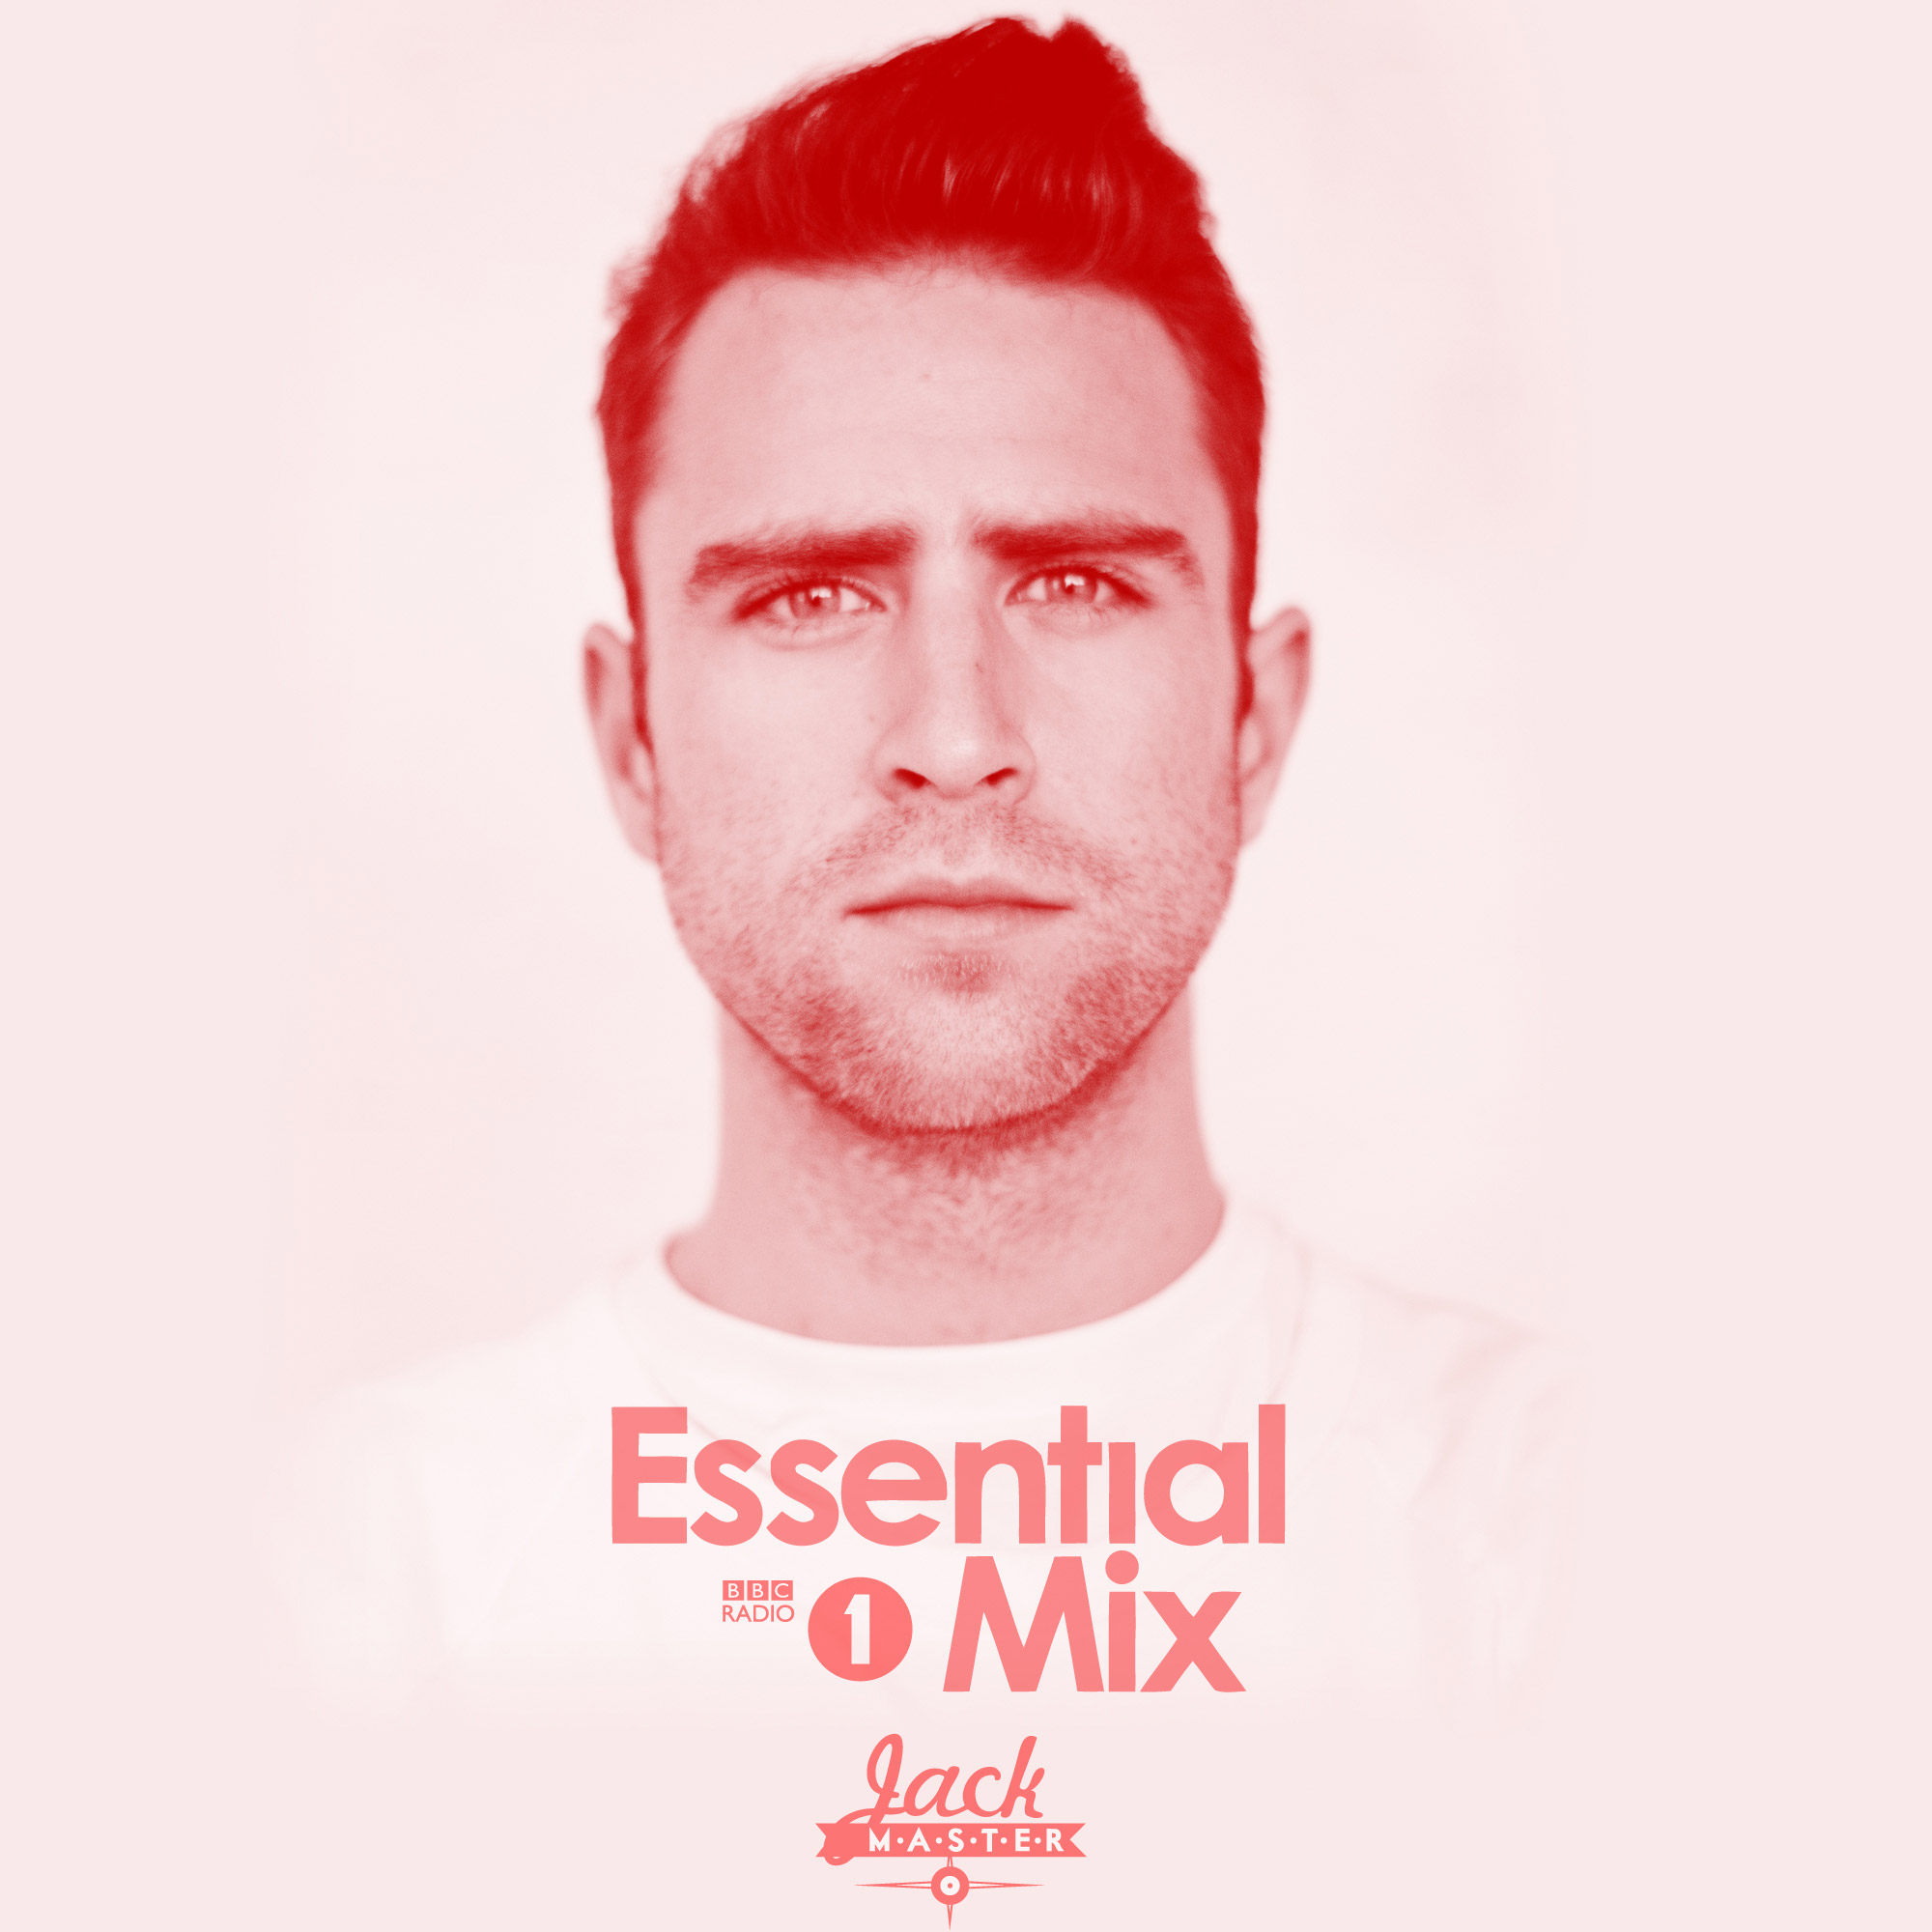 JACKMASTER - BBC RADIO 1 ESSENTIAL MIX